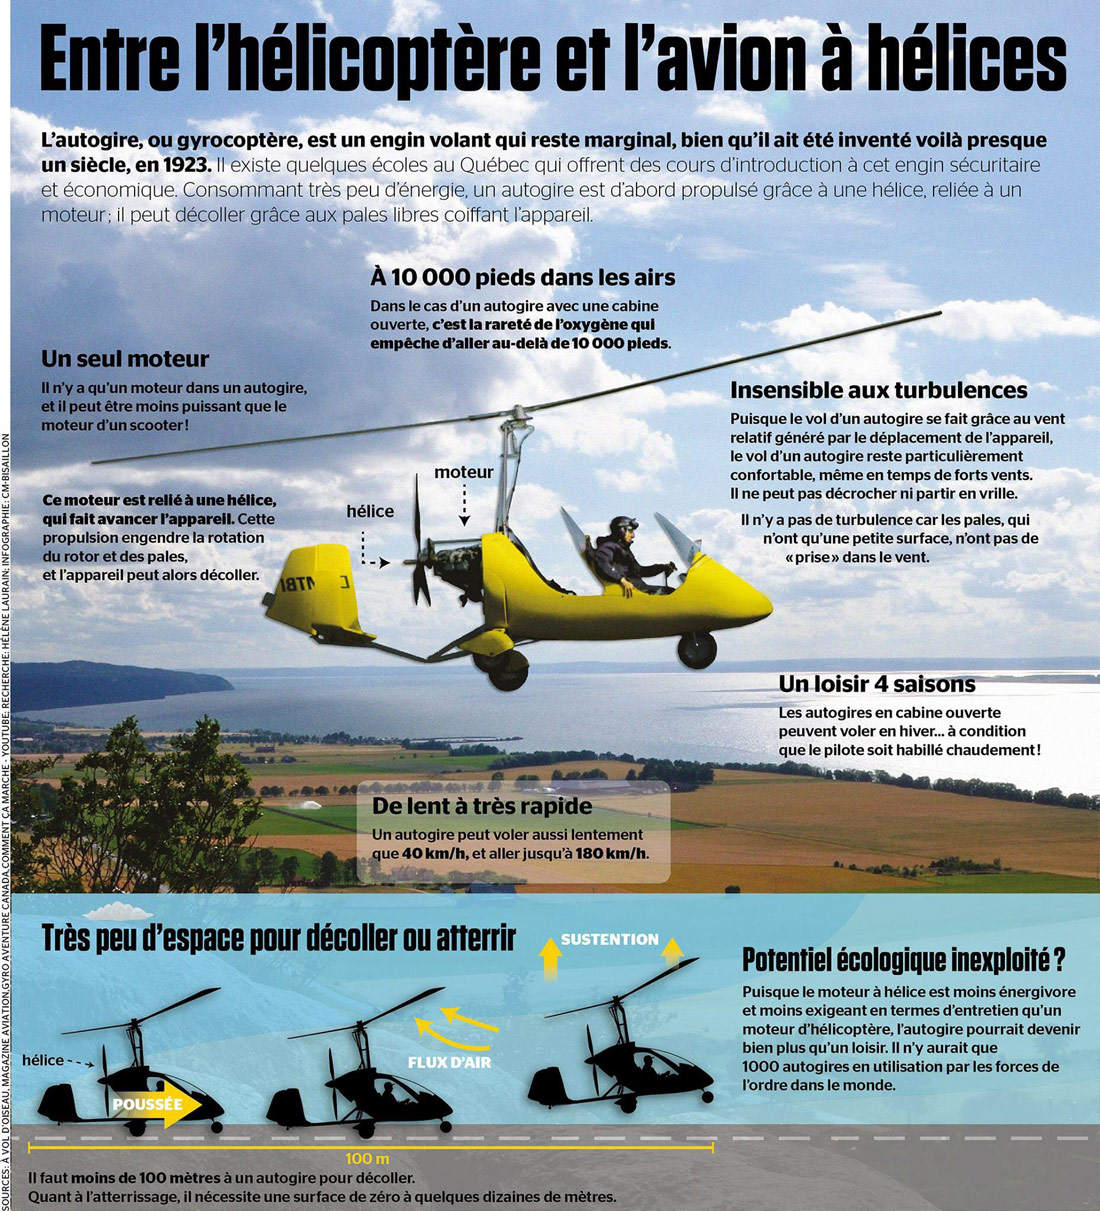 autogire autogyre gyrocoptere gyrocopter cours theorique ulm fly sorgue ventoux